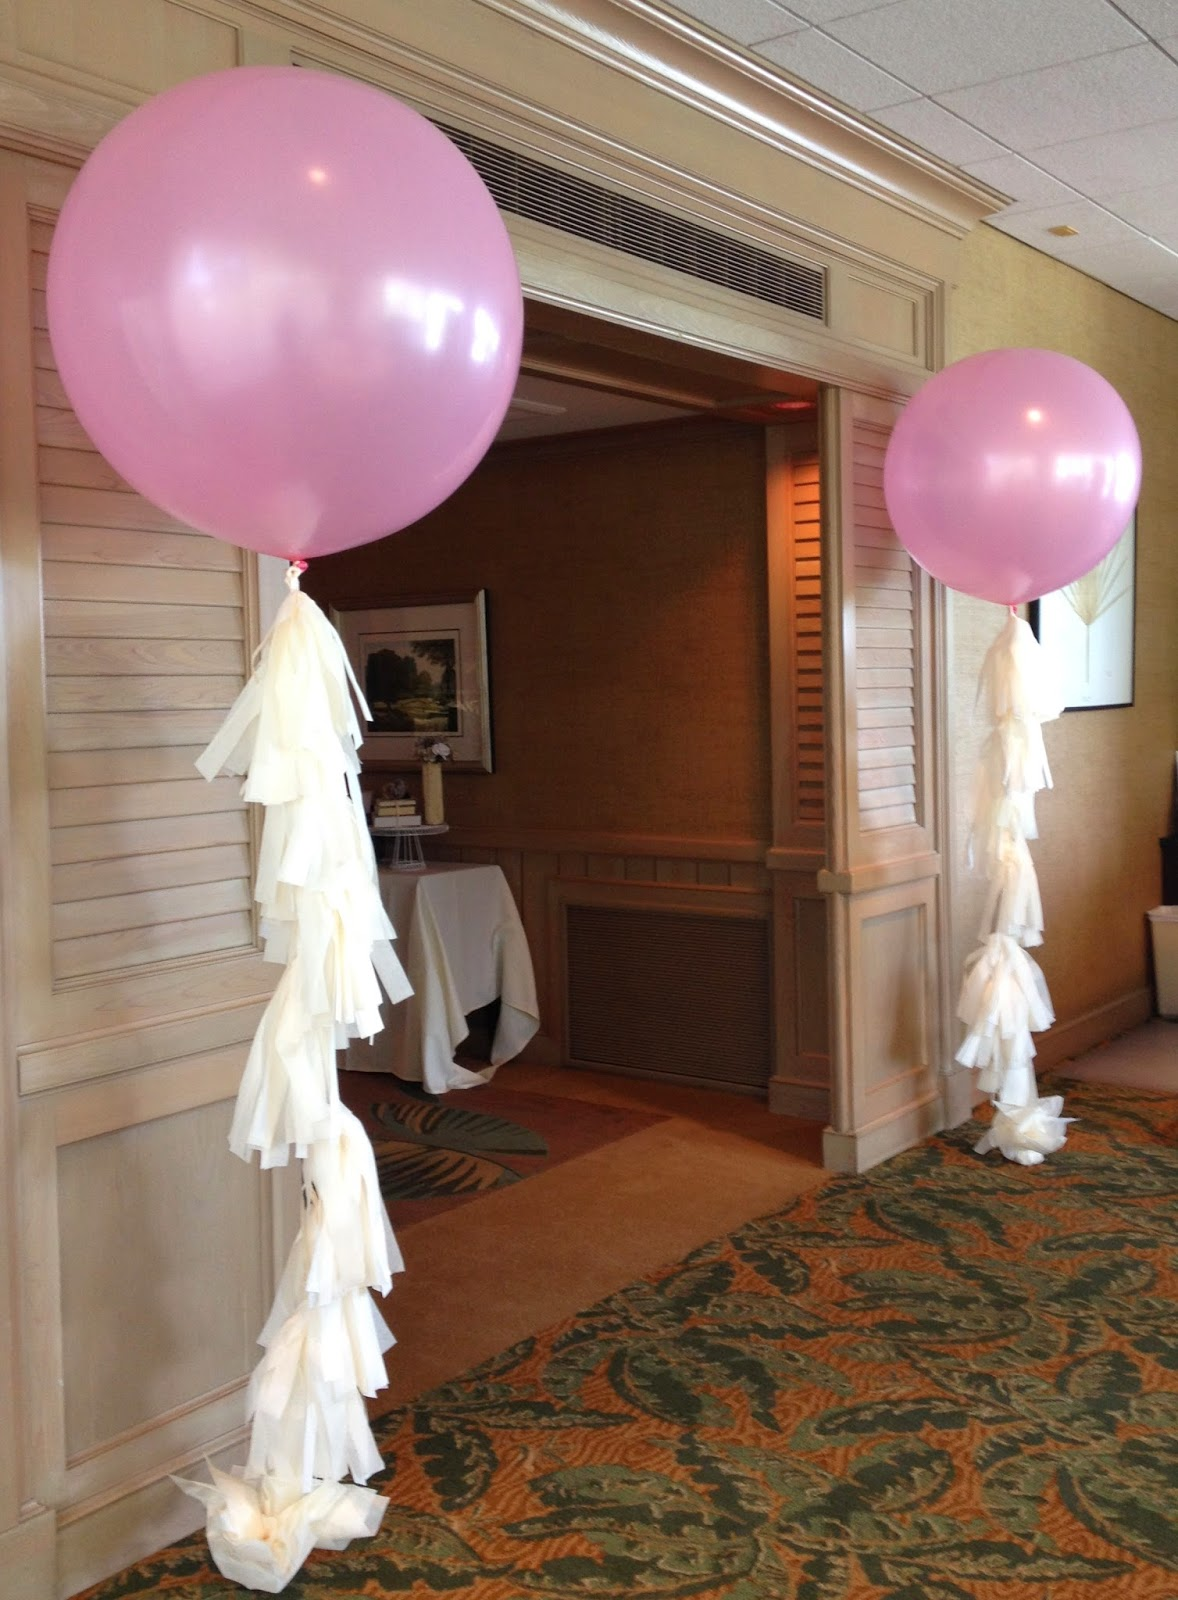 Party people event decorating company geronimo balloons for Balloon decoration company